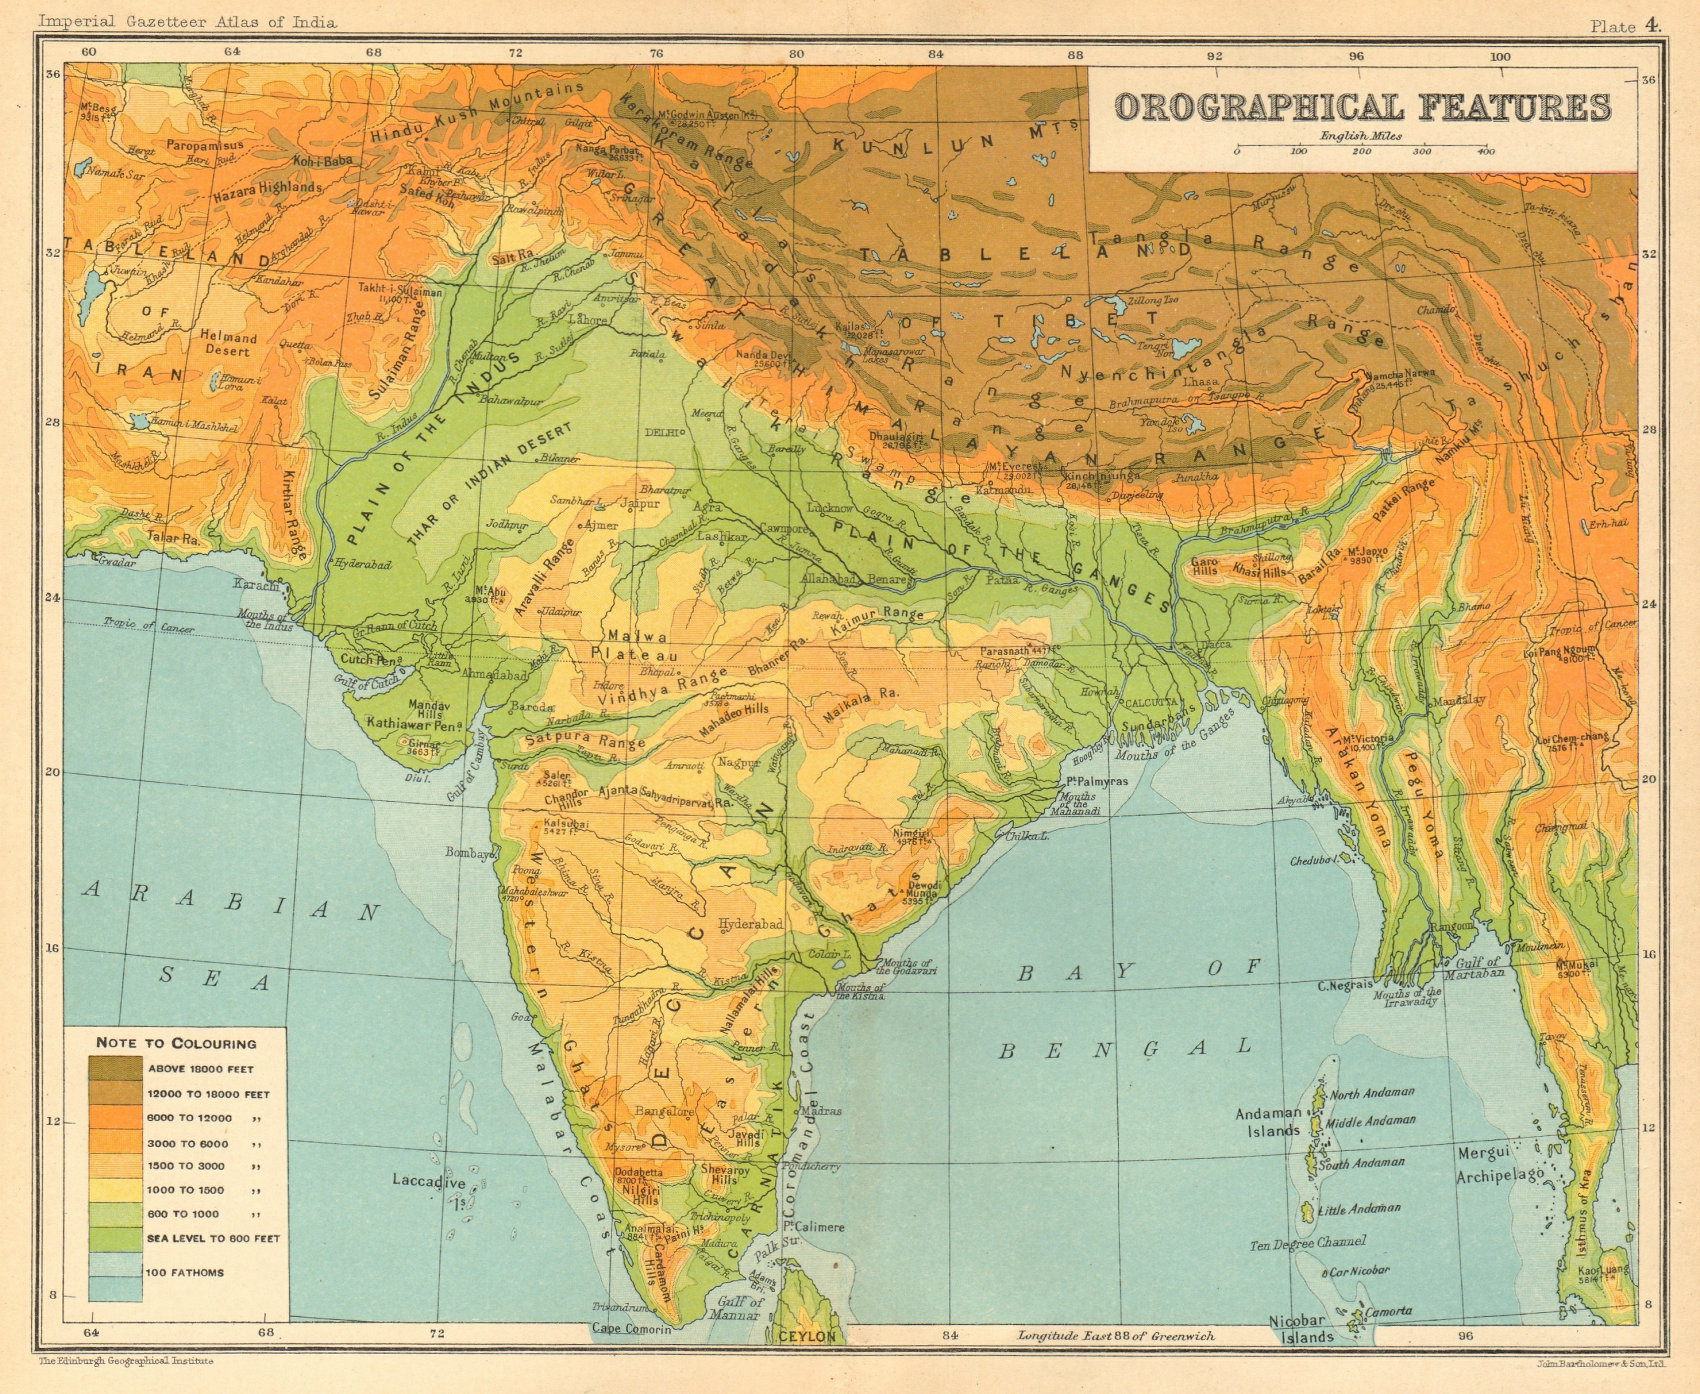 Associate Product SOUTH ASIA RELIEF. India Burma Pakistan Orographical Features 1931 old map